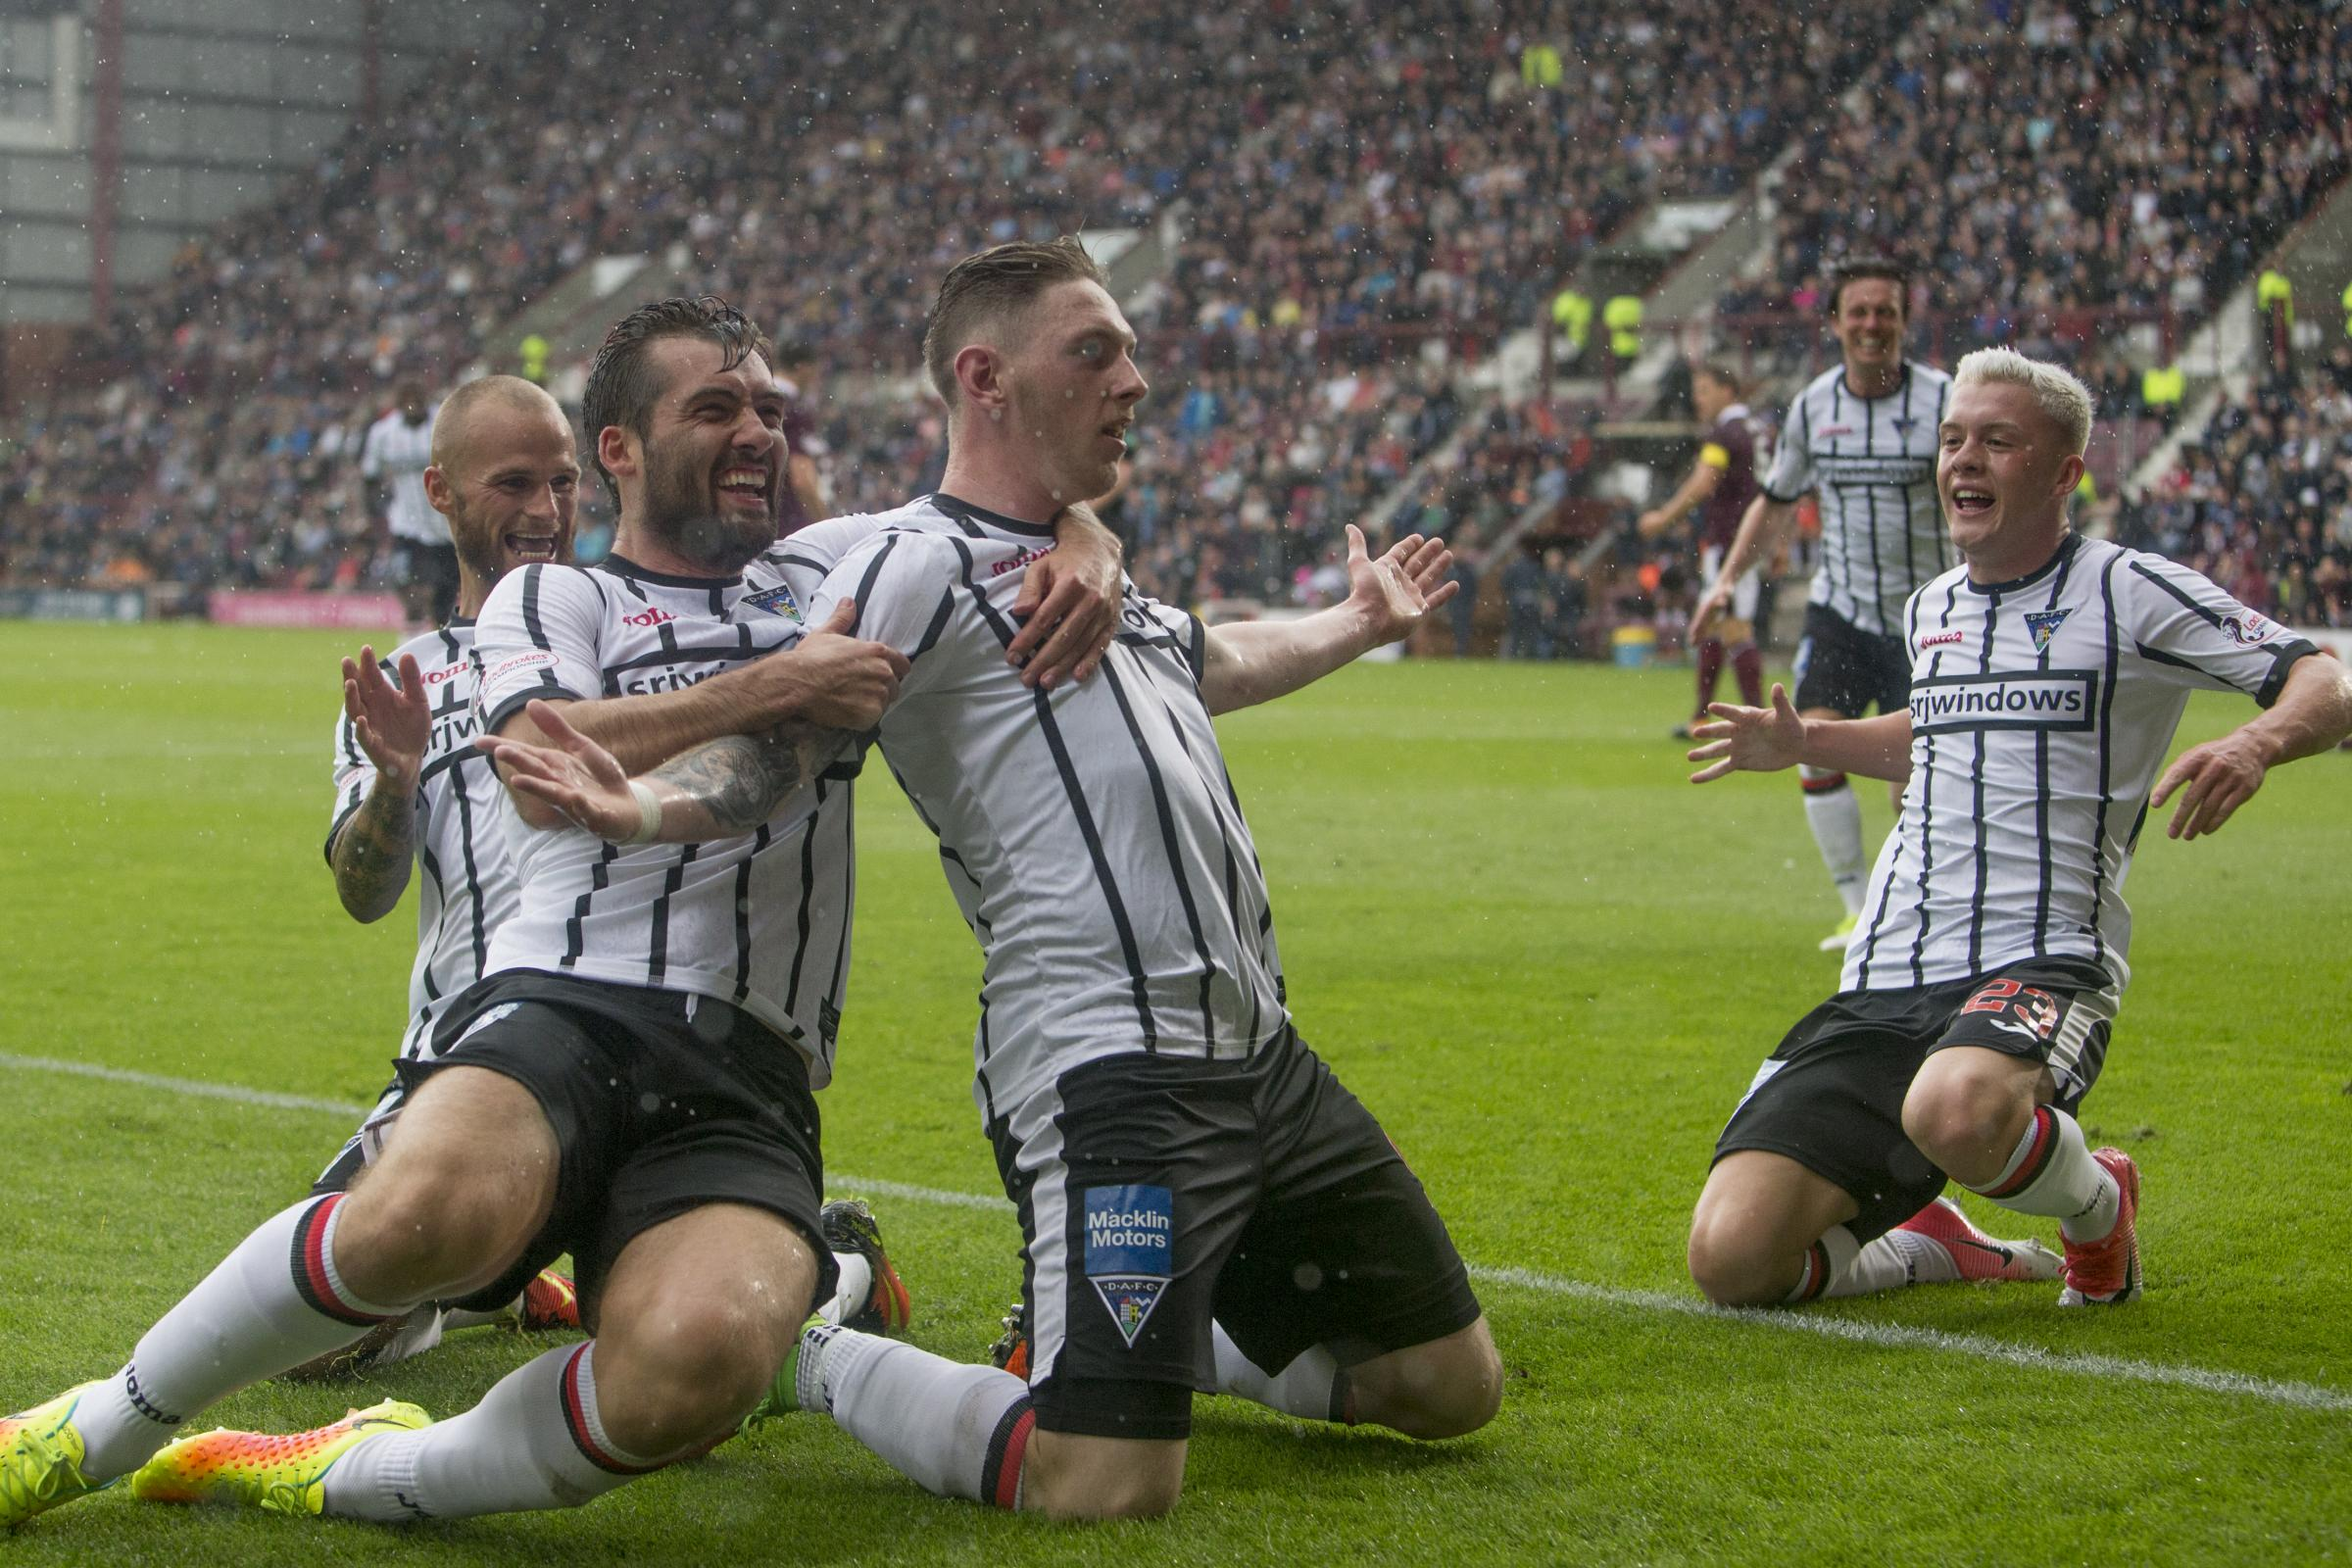 Ahead of Hearts v Dunfermline, we look at previous games